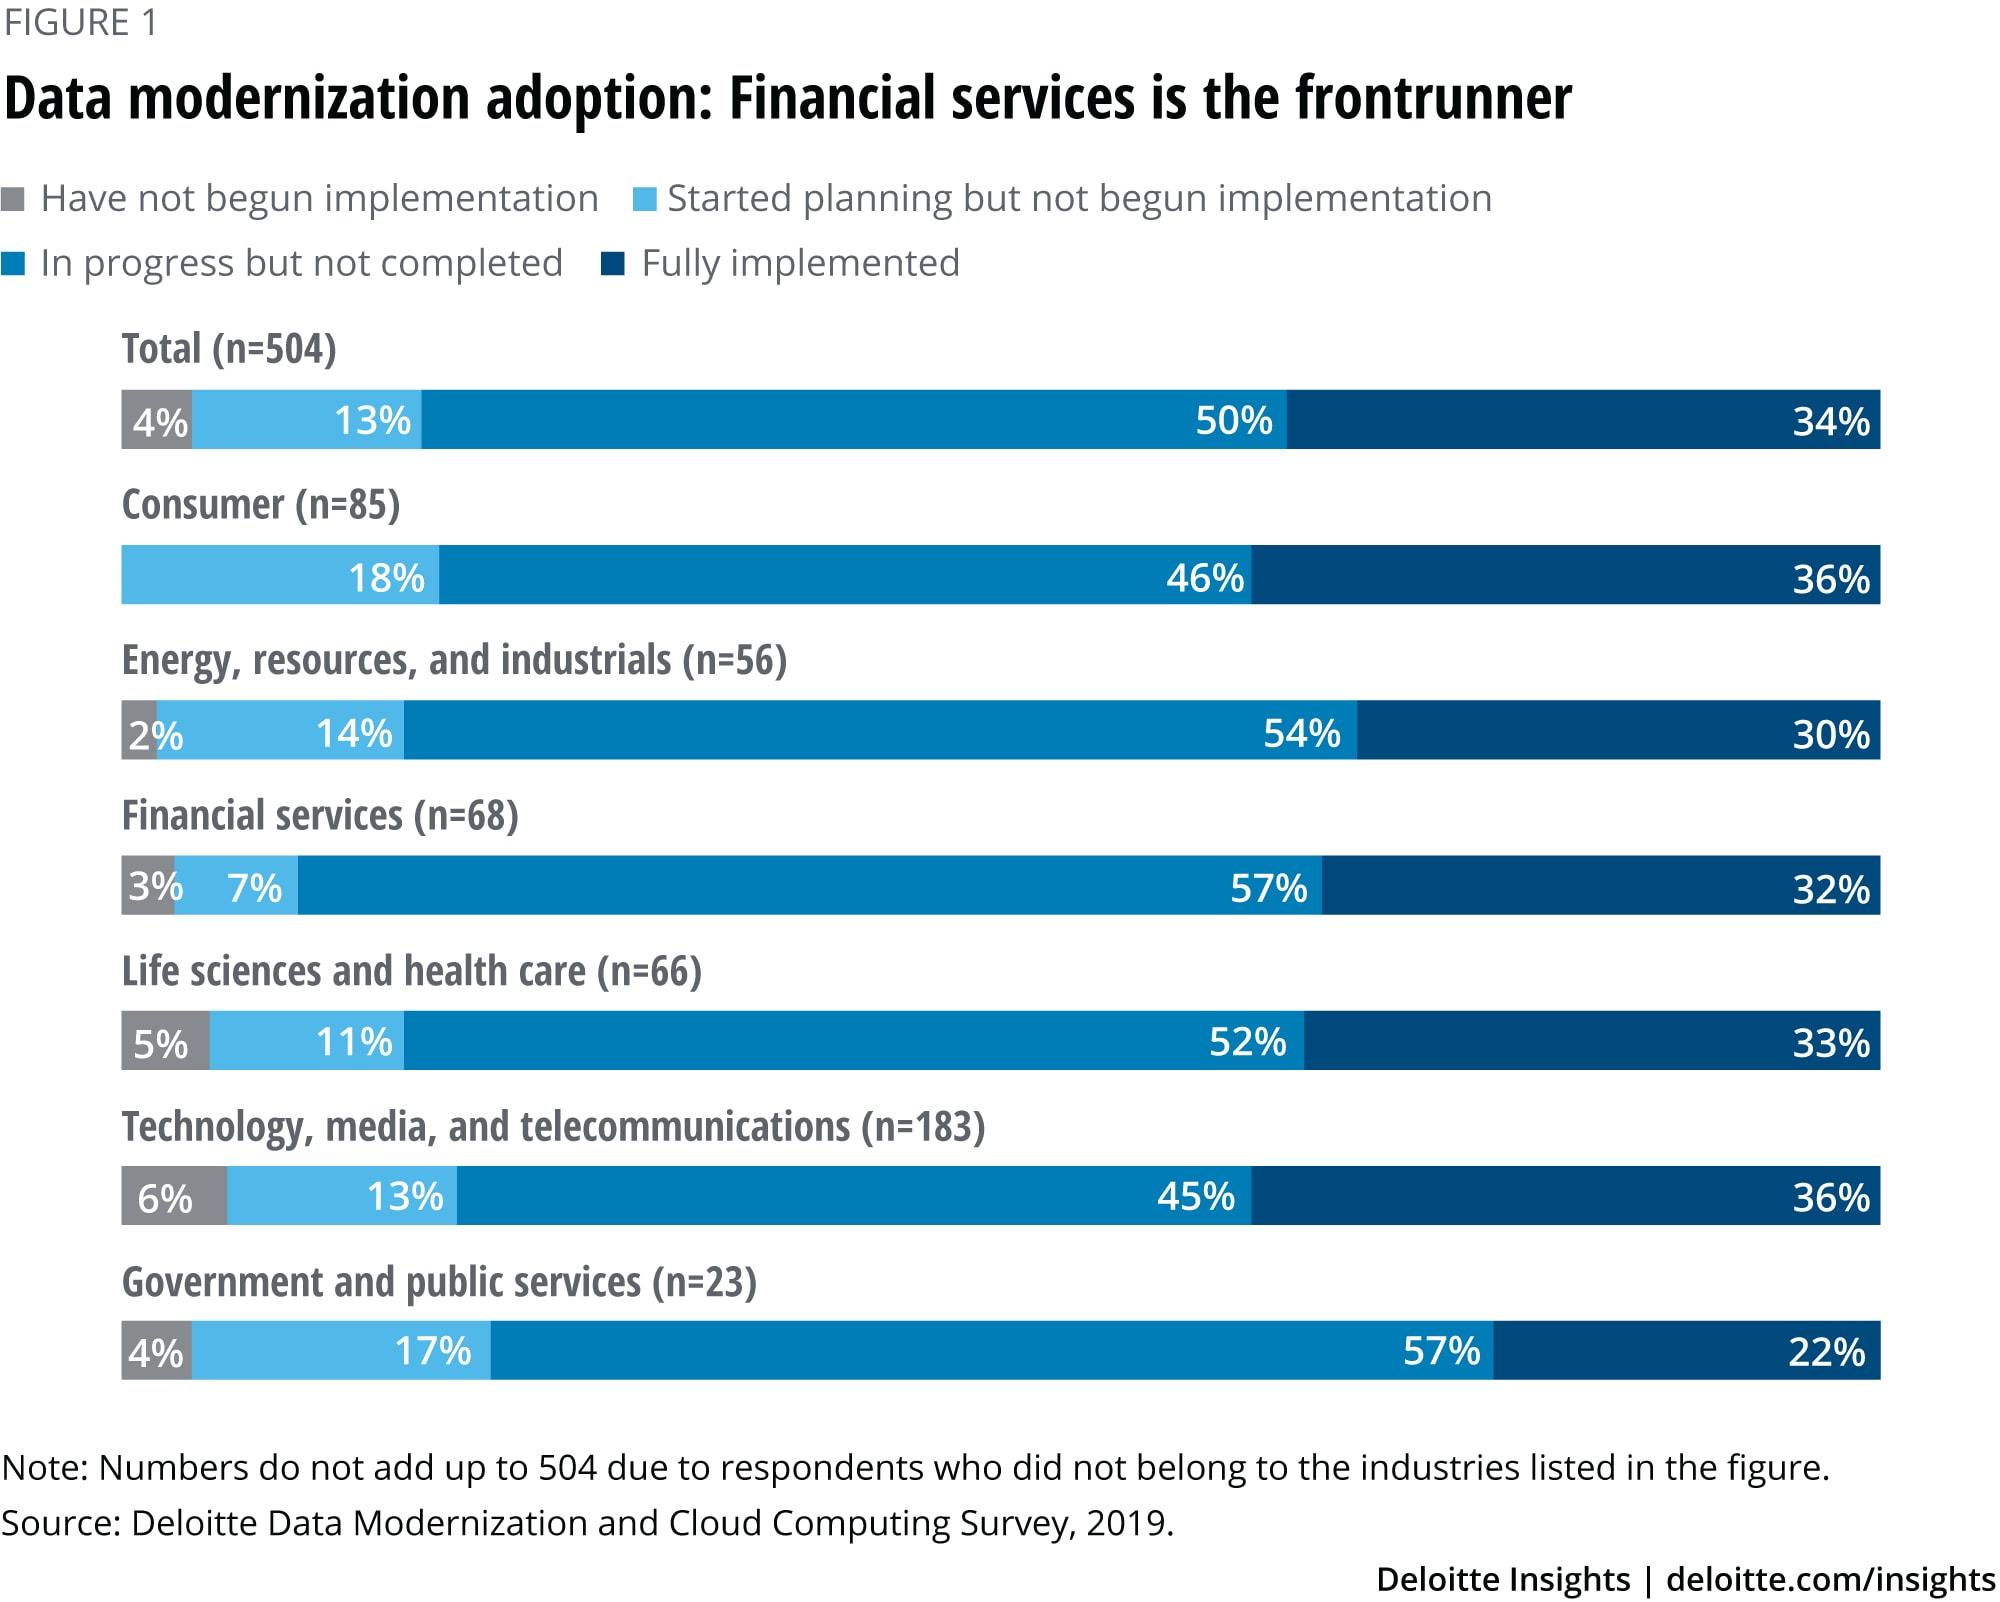 Data modernization adoption: Financial services is the frontrunner